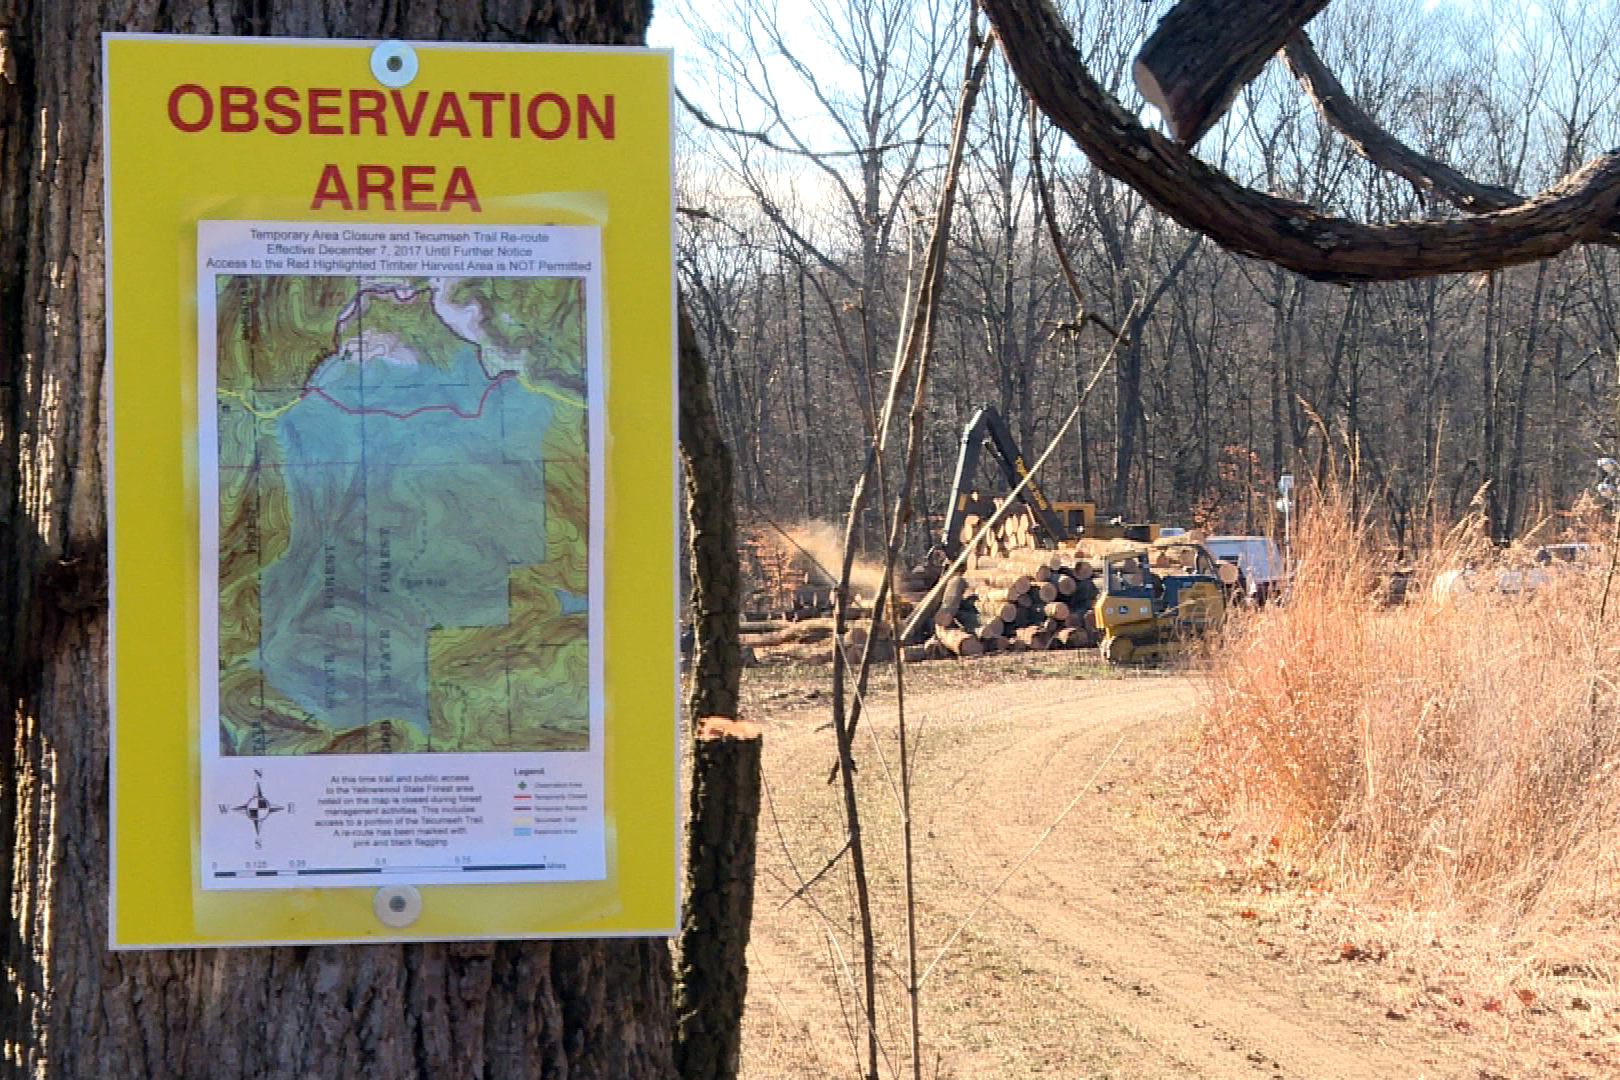 A sign designating the observation area in Yellowwood State Forest.